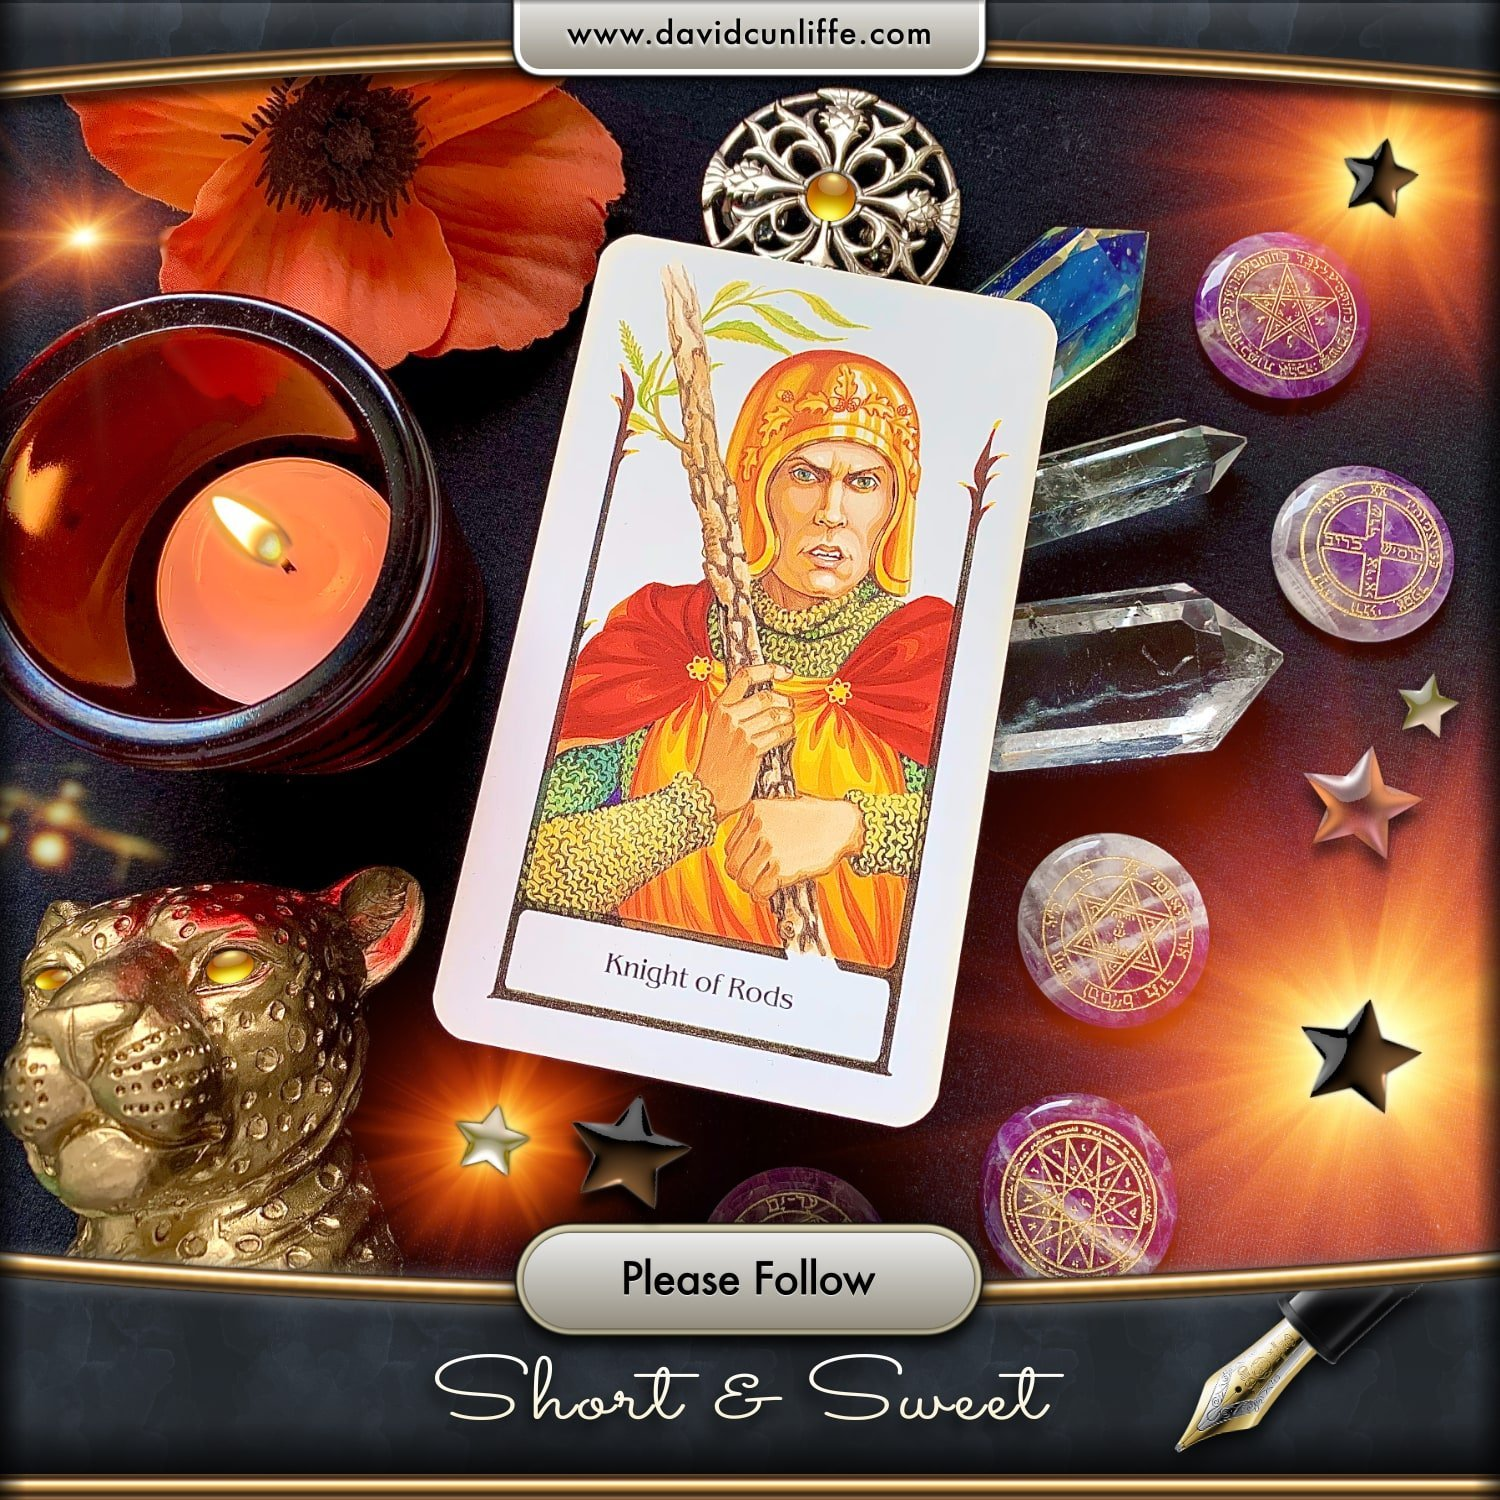 Knight of Wands: Tarot of the Old Path by Sylvia Gainsford